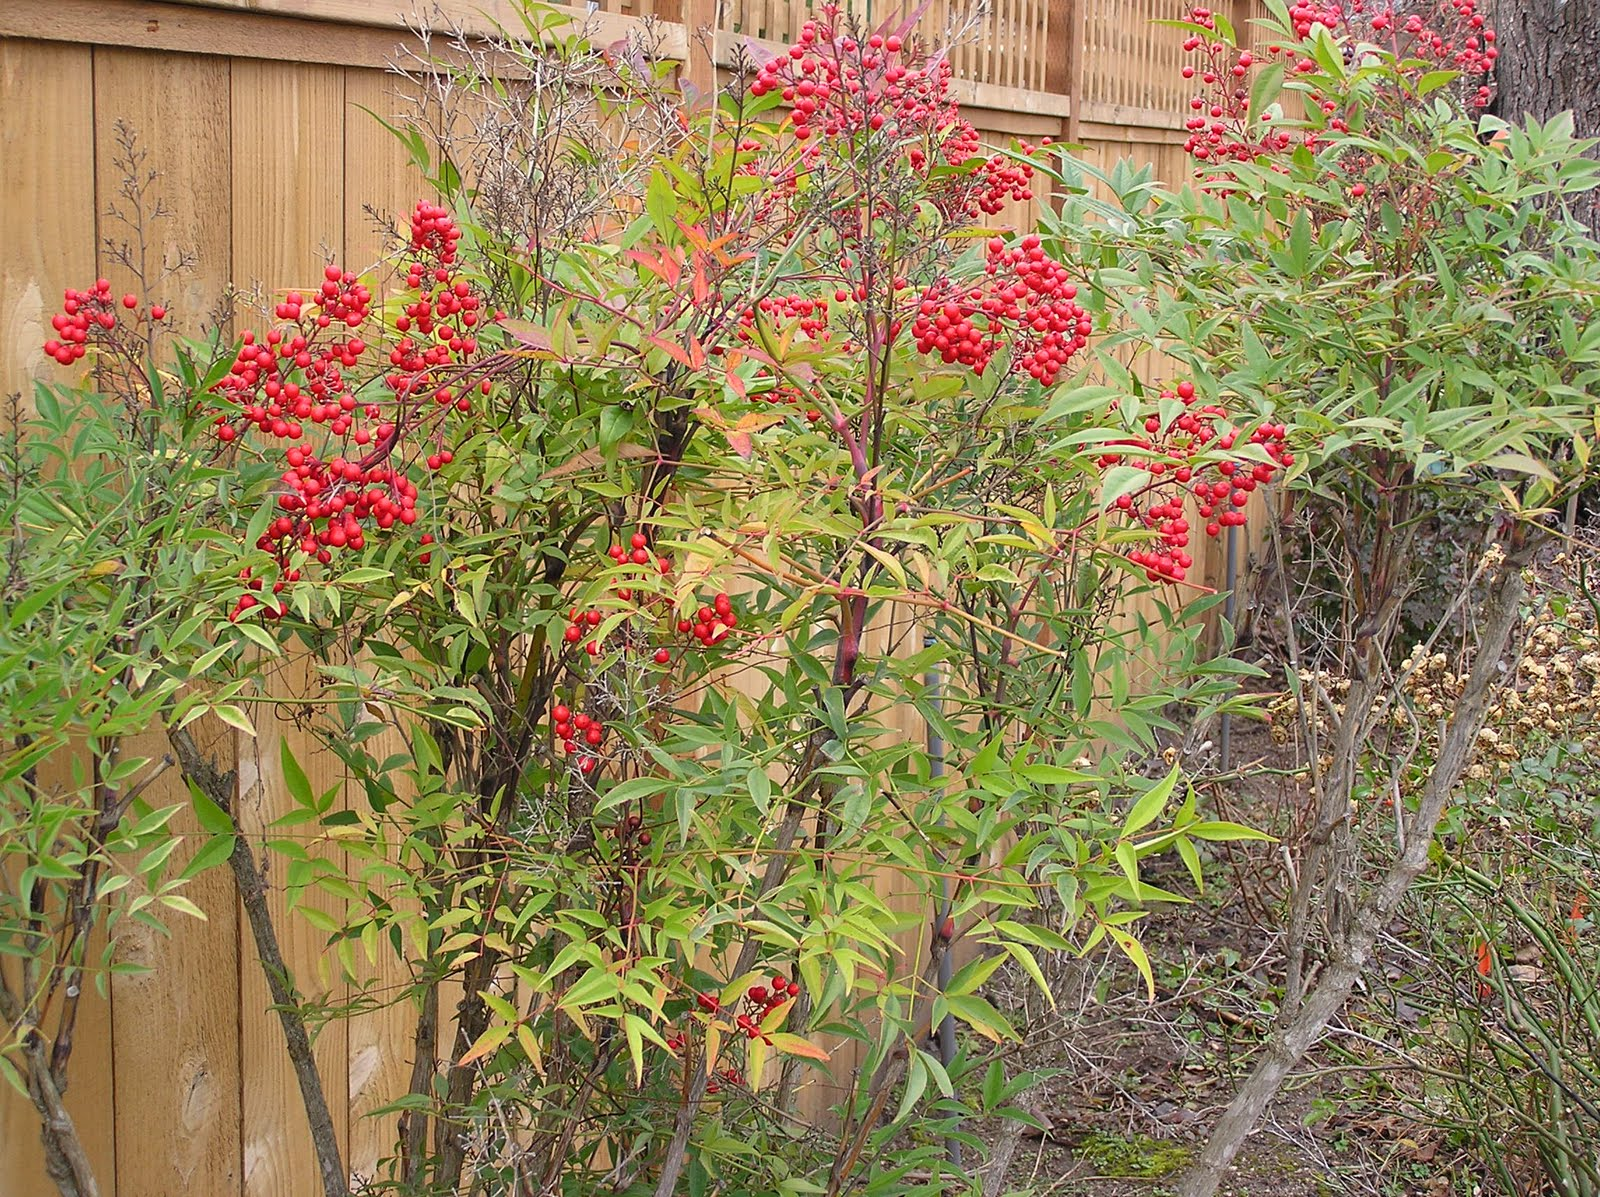 Landscaping Shrubs With Red Berries : October ashland garden club page